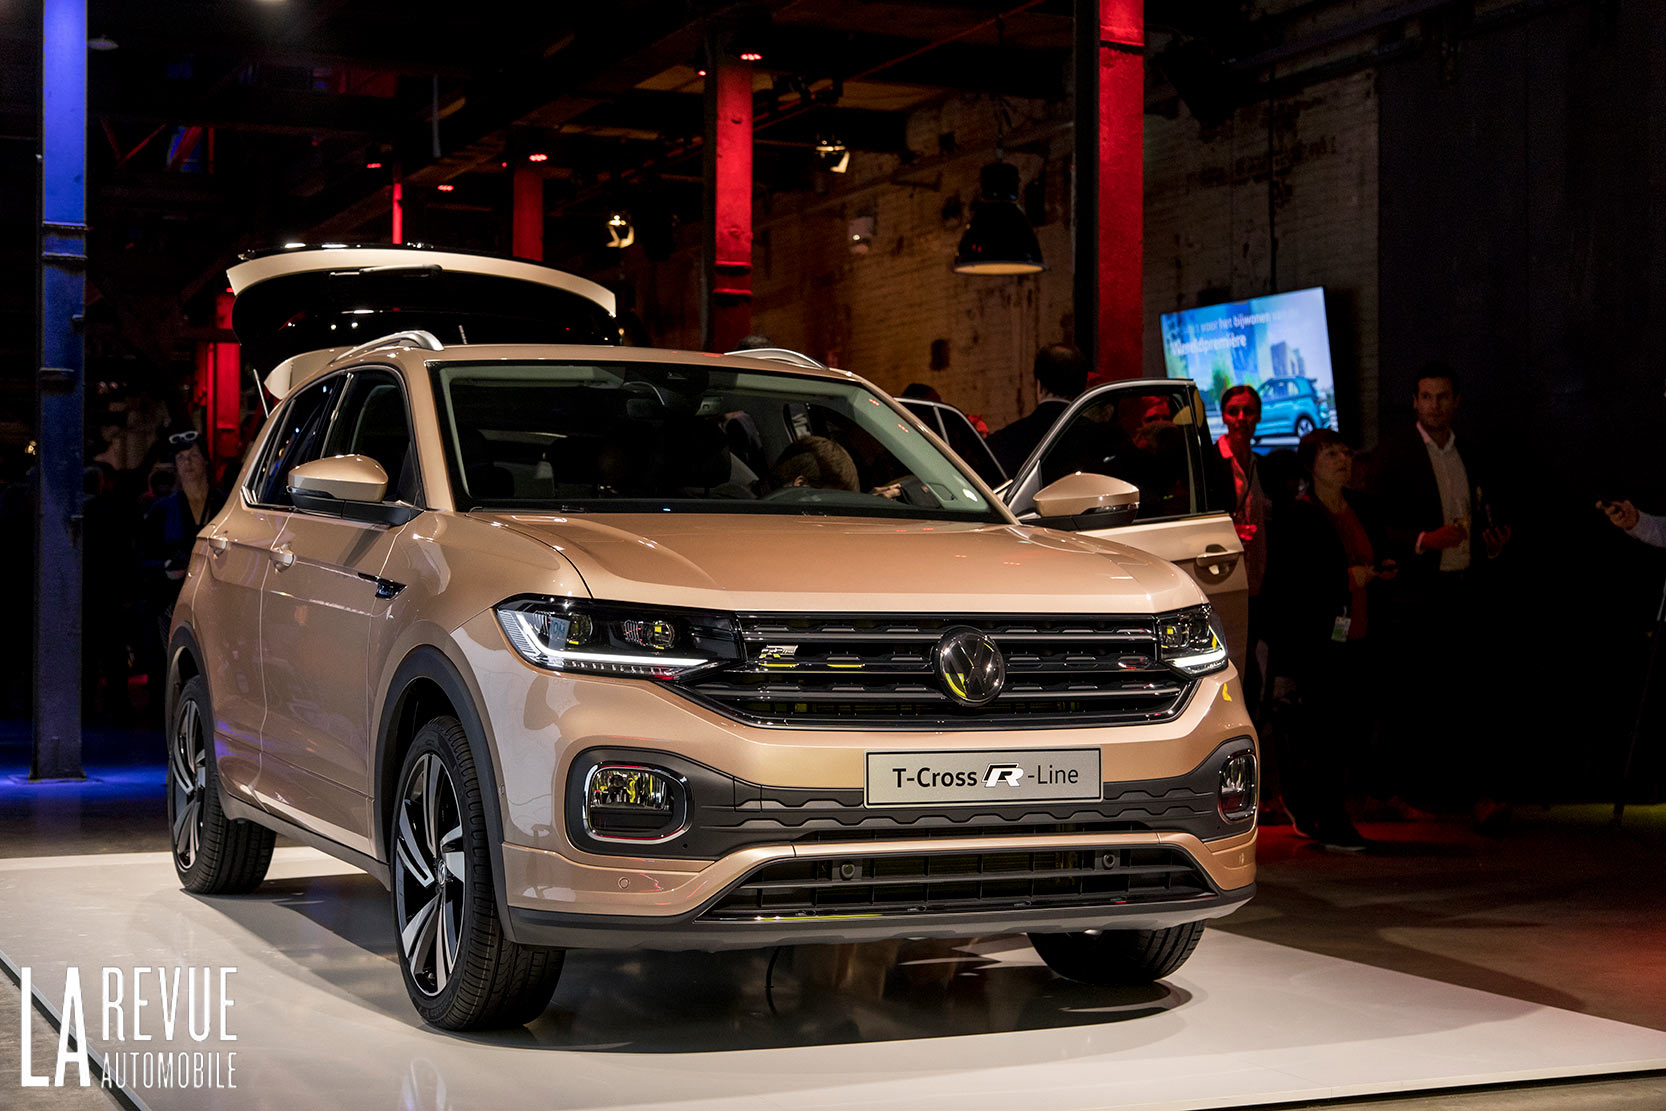 Exterieur_Volkswagen-T-Cross-Reveal_11